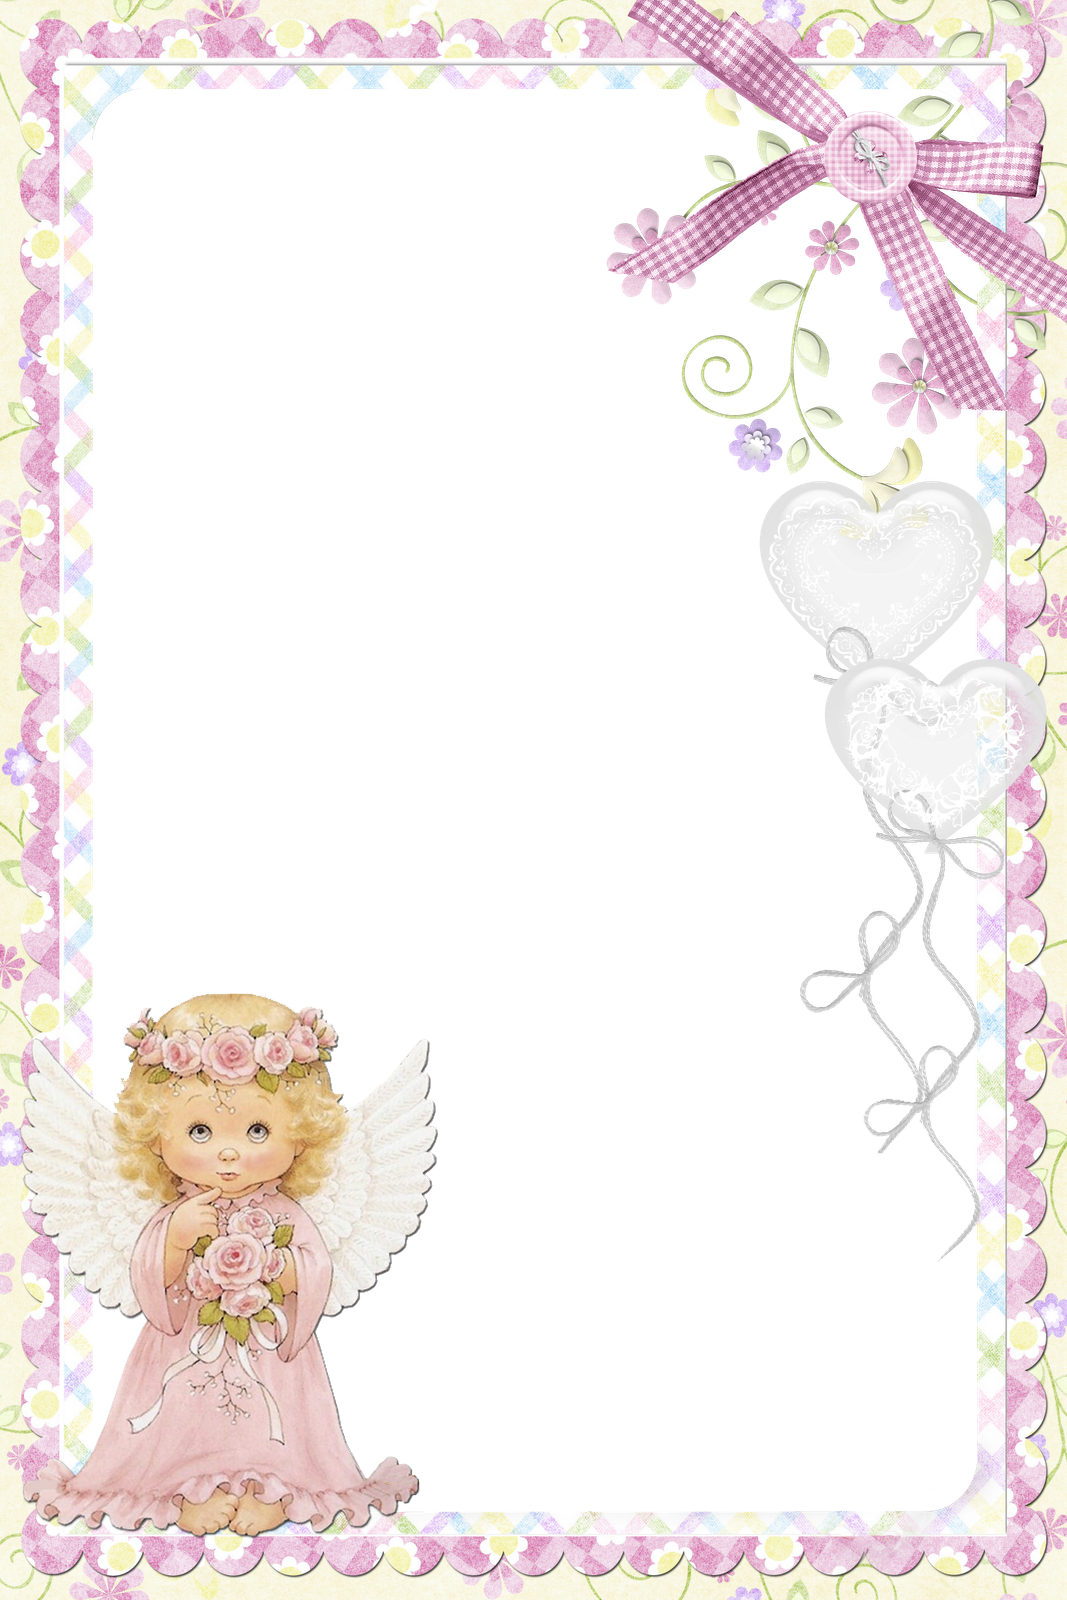 Angel frame png. Cute soft pink with